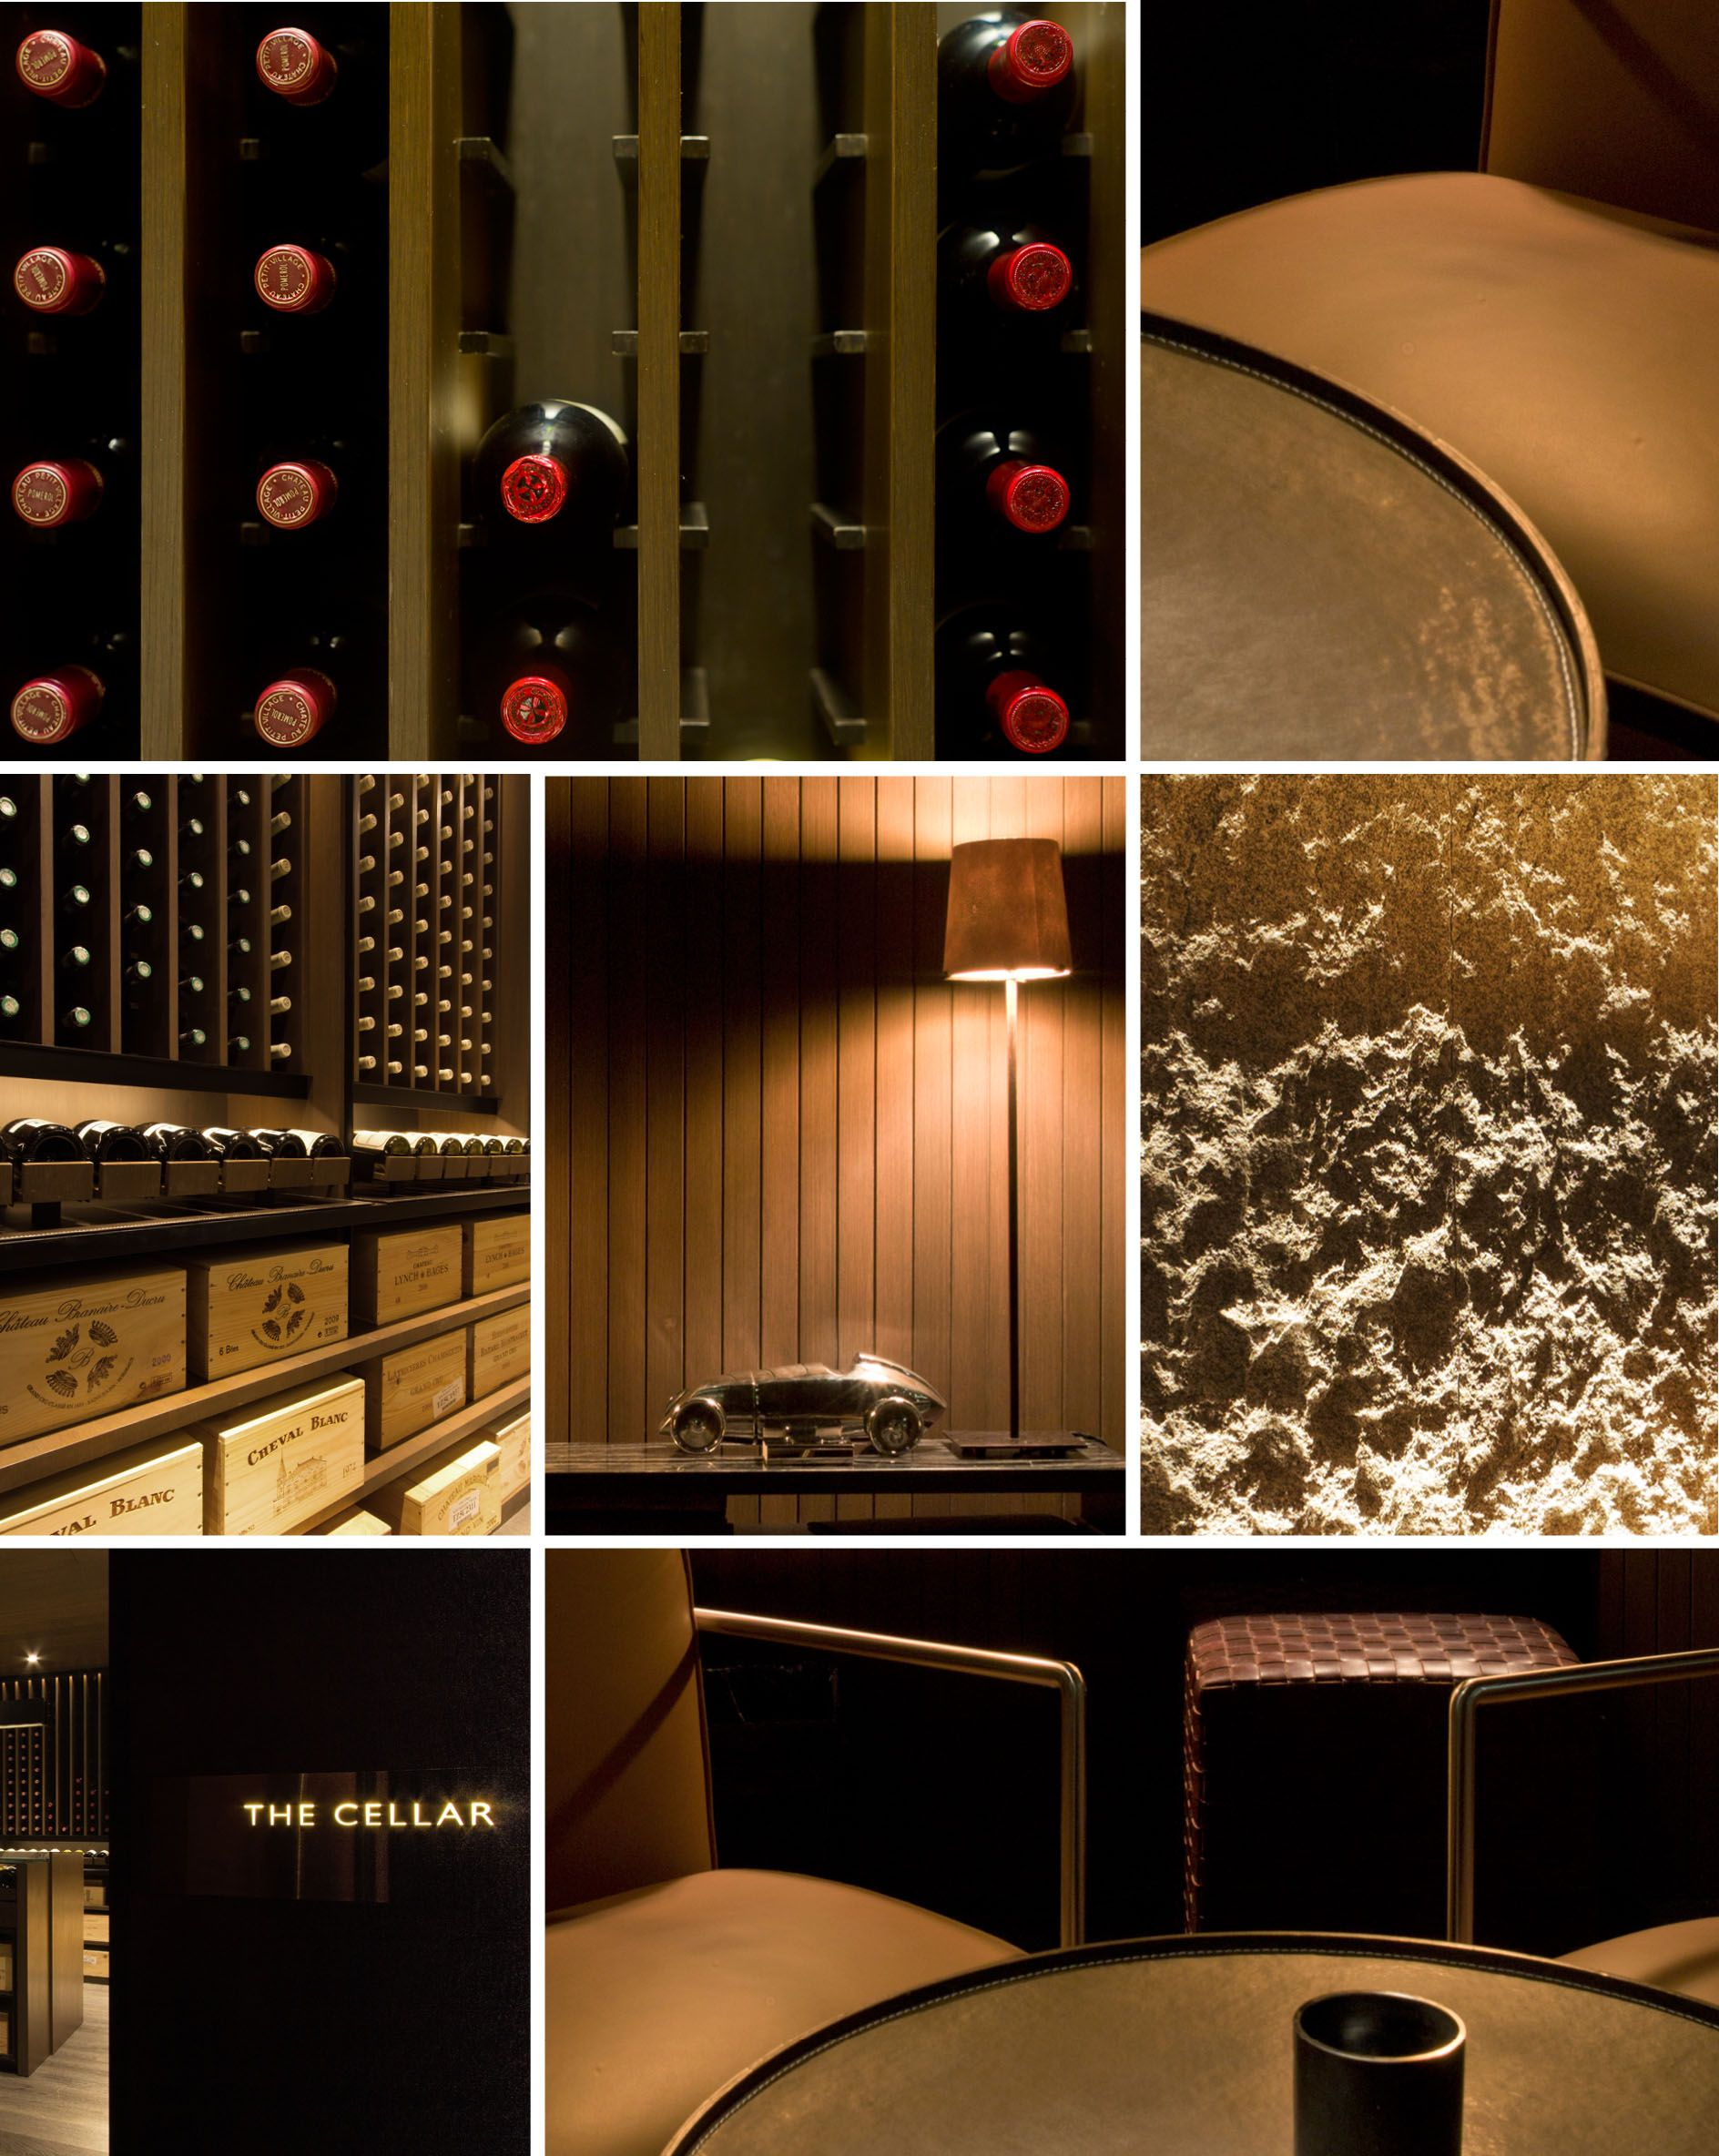 Scda Holland Road, Singapore, Wine Cellar